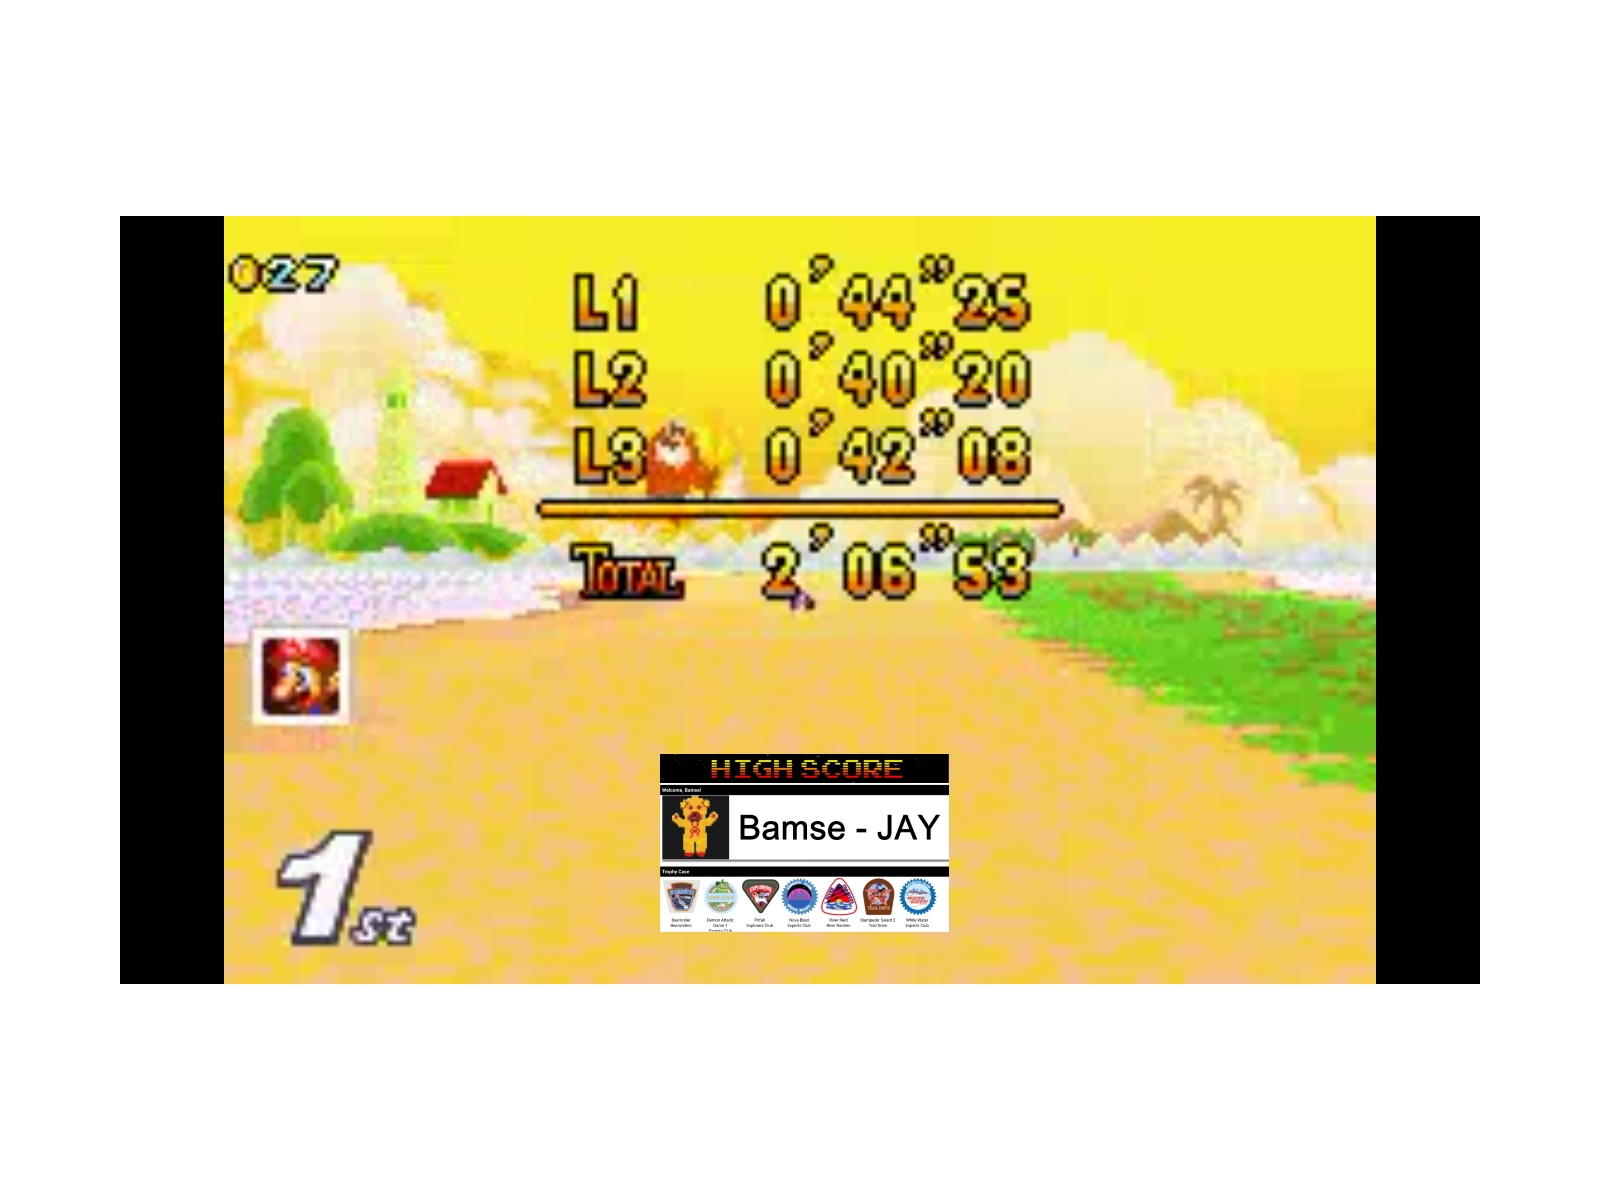 Bamse: Mario Kart Super Circuit: Cheep Cheep Island [50cc] [Lap Time] (GBA Emulated) 0:00:40.2 points on 2019-12-17 13:13:45